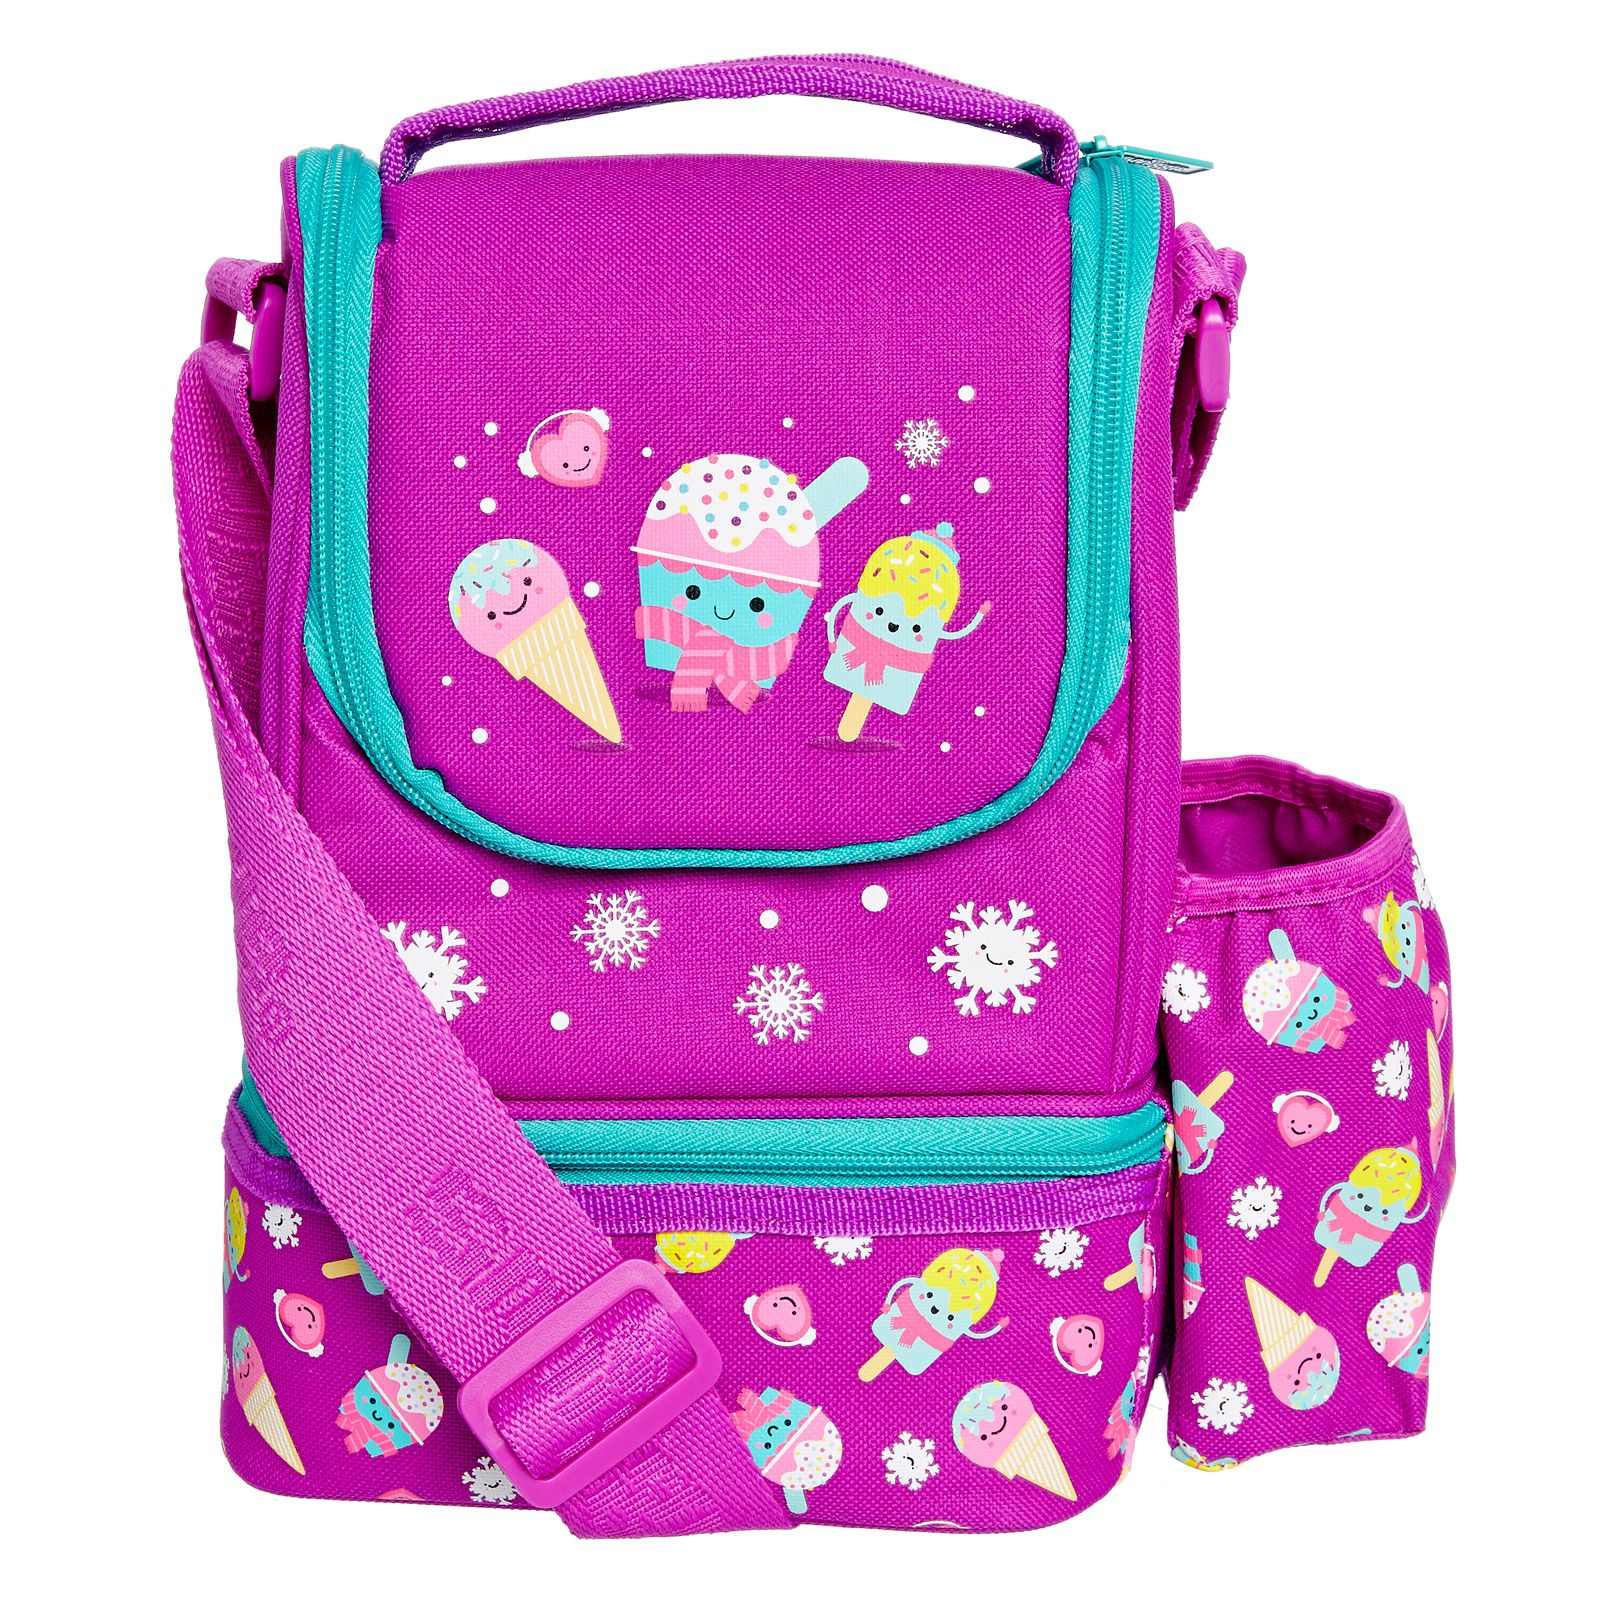 Image for Yums Lunchbox Strap from Smiggle UK Smiggle